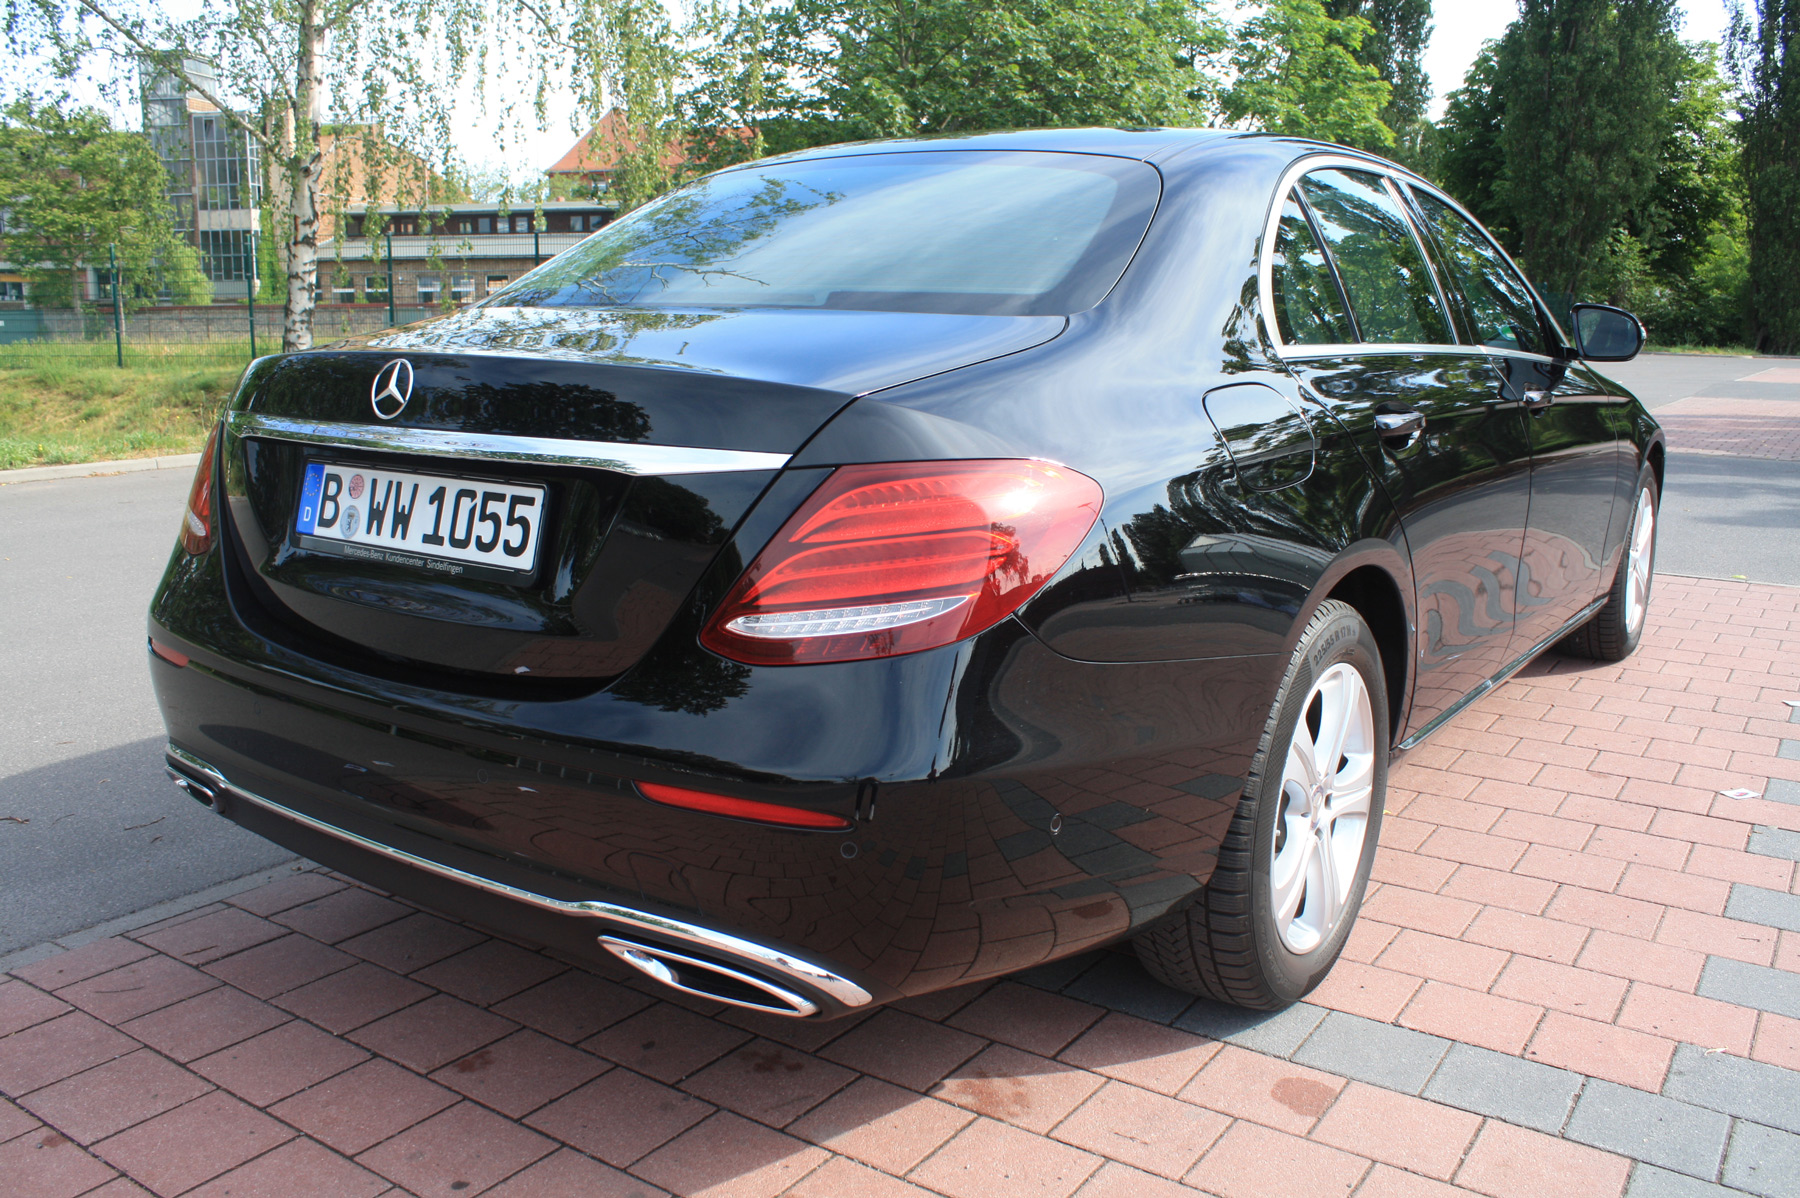 berlin limo, berlin limo hire the world awaits outside, the stress mercedes